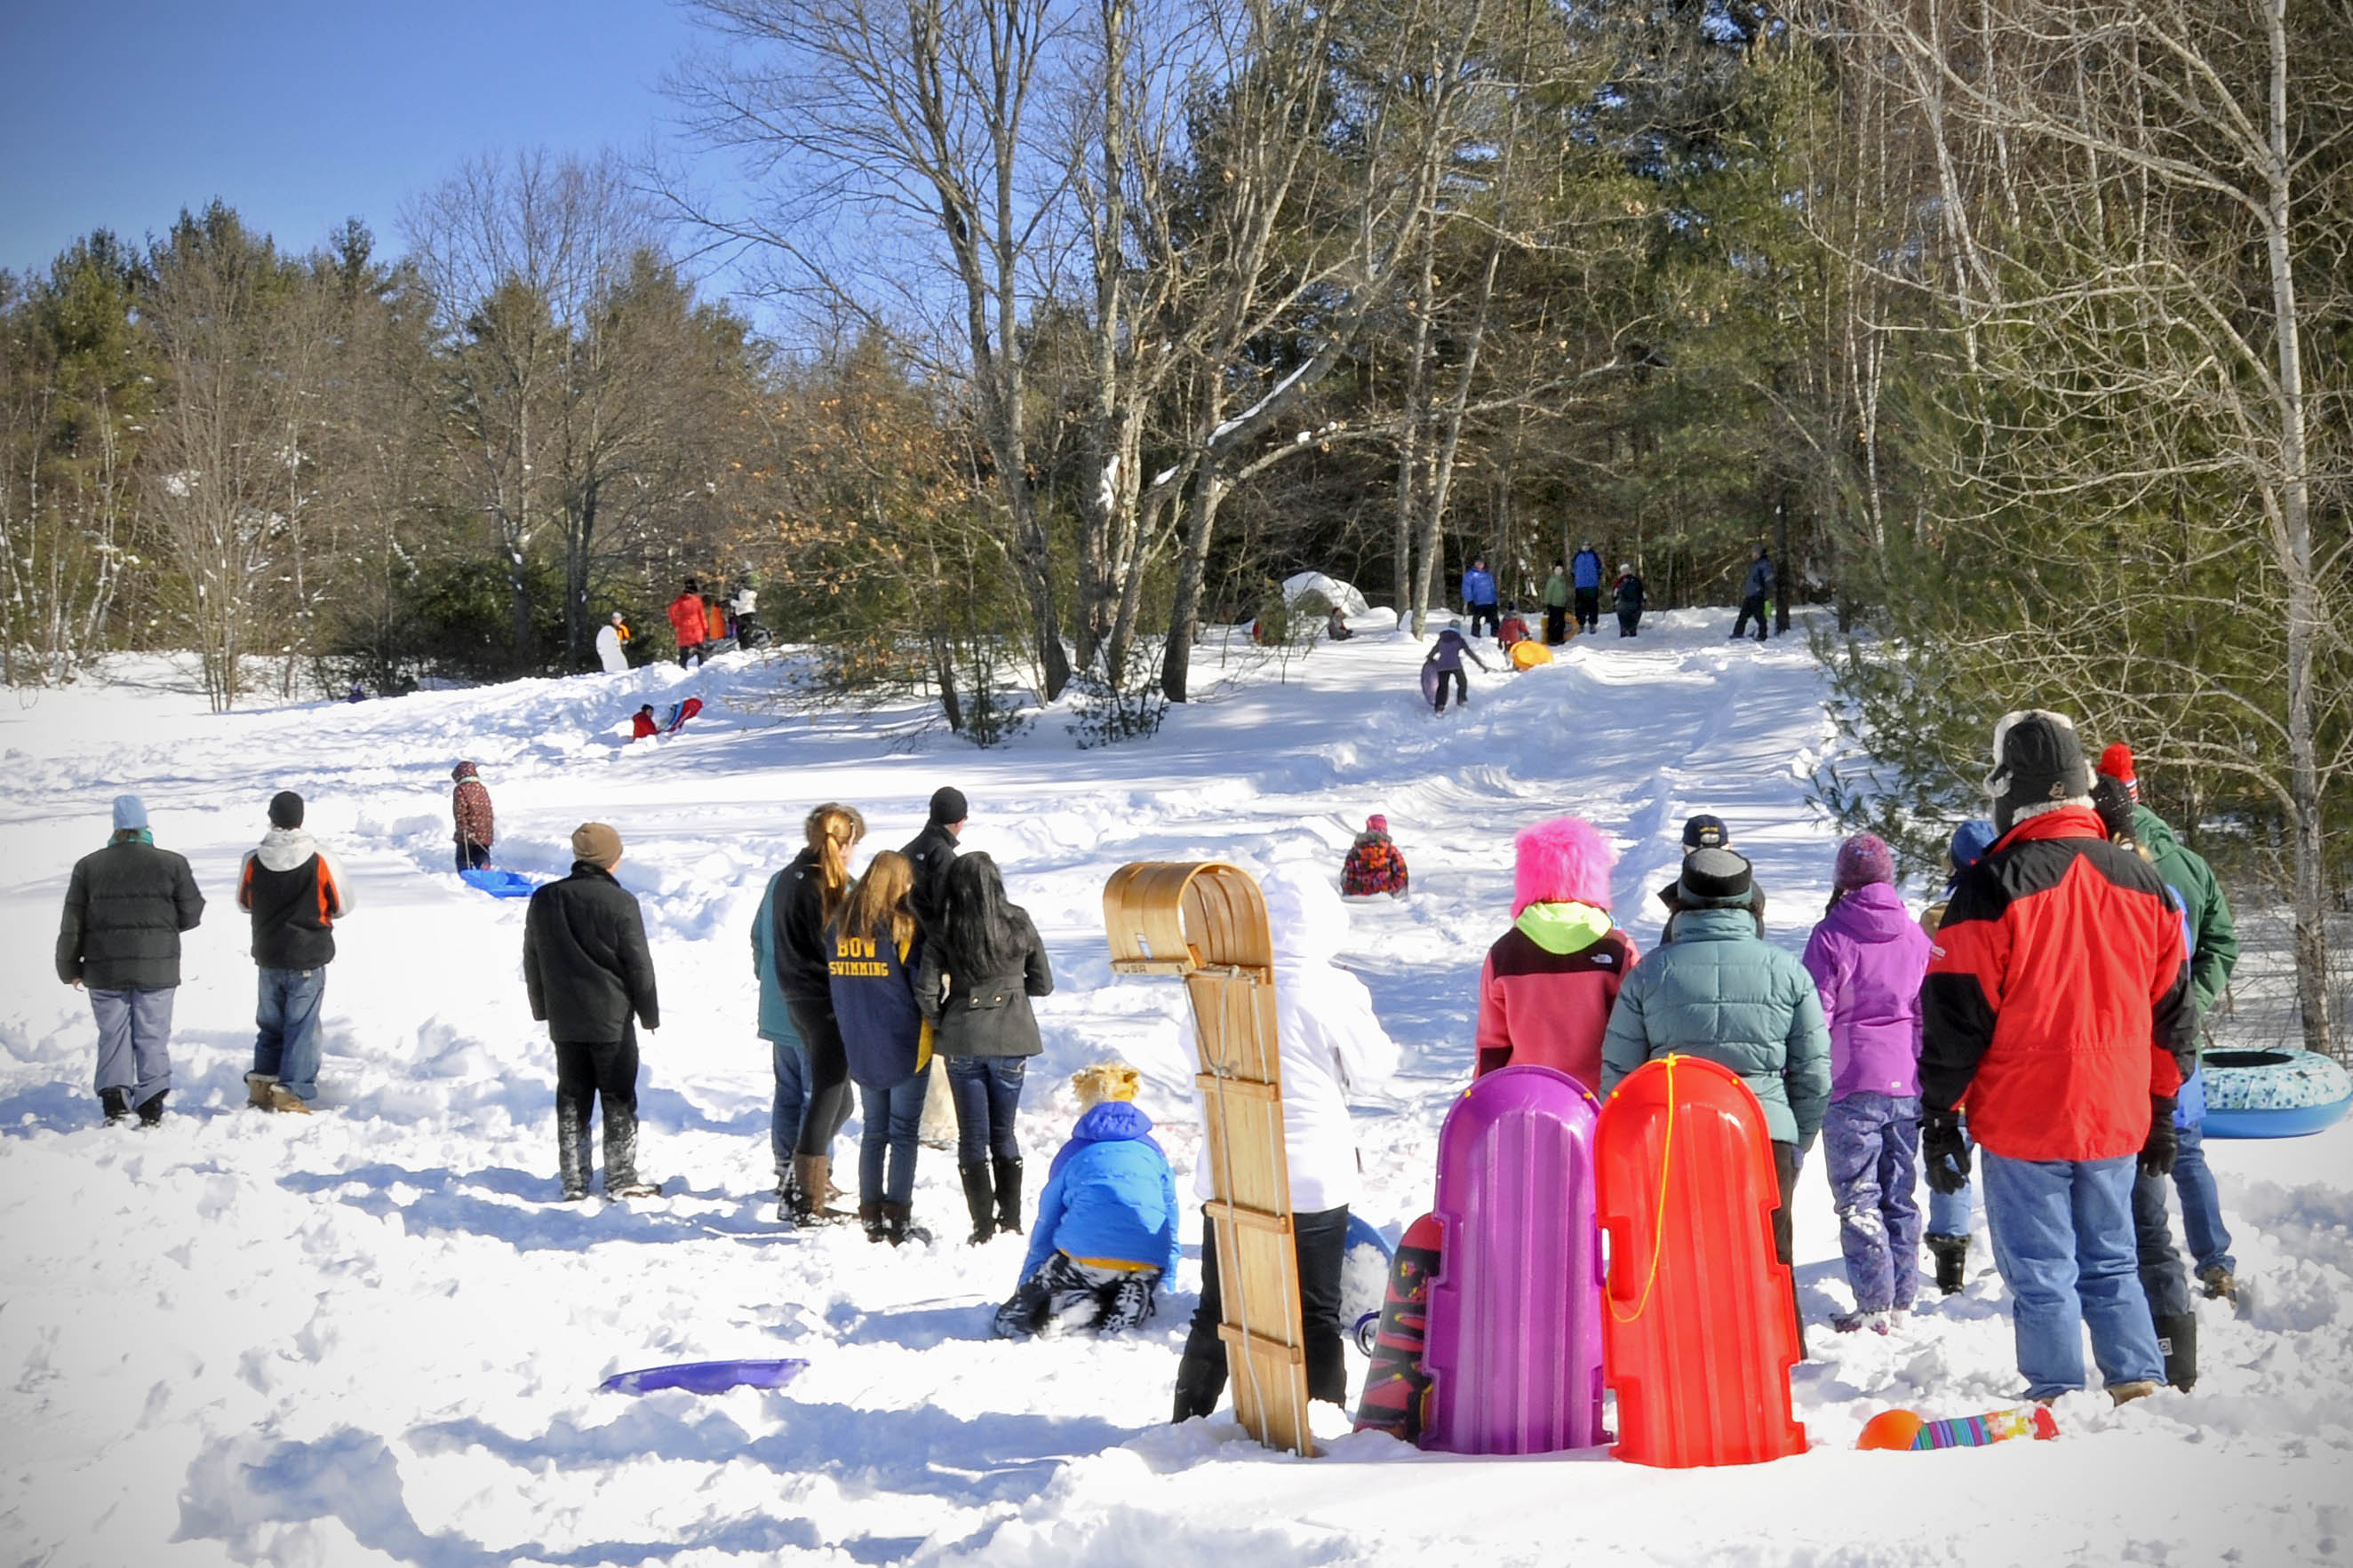 Adults and children with winter coats sledding down a hill